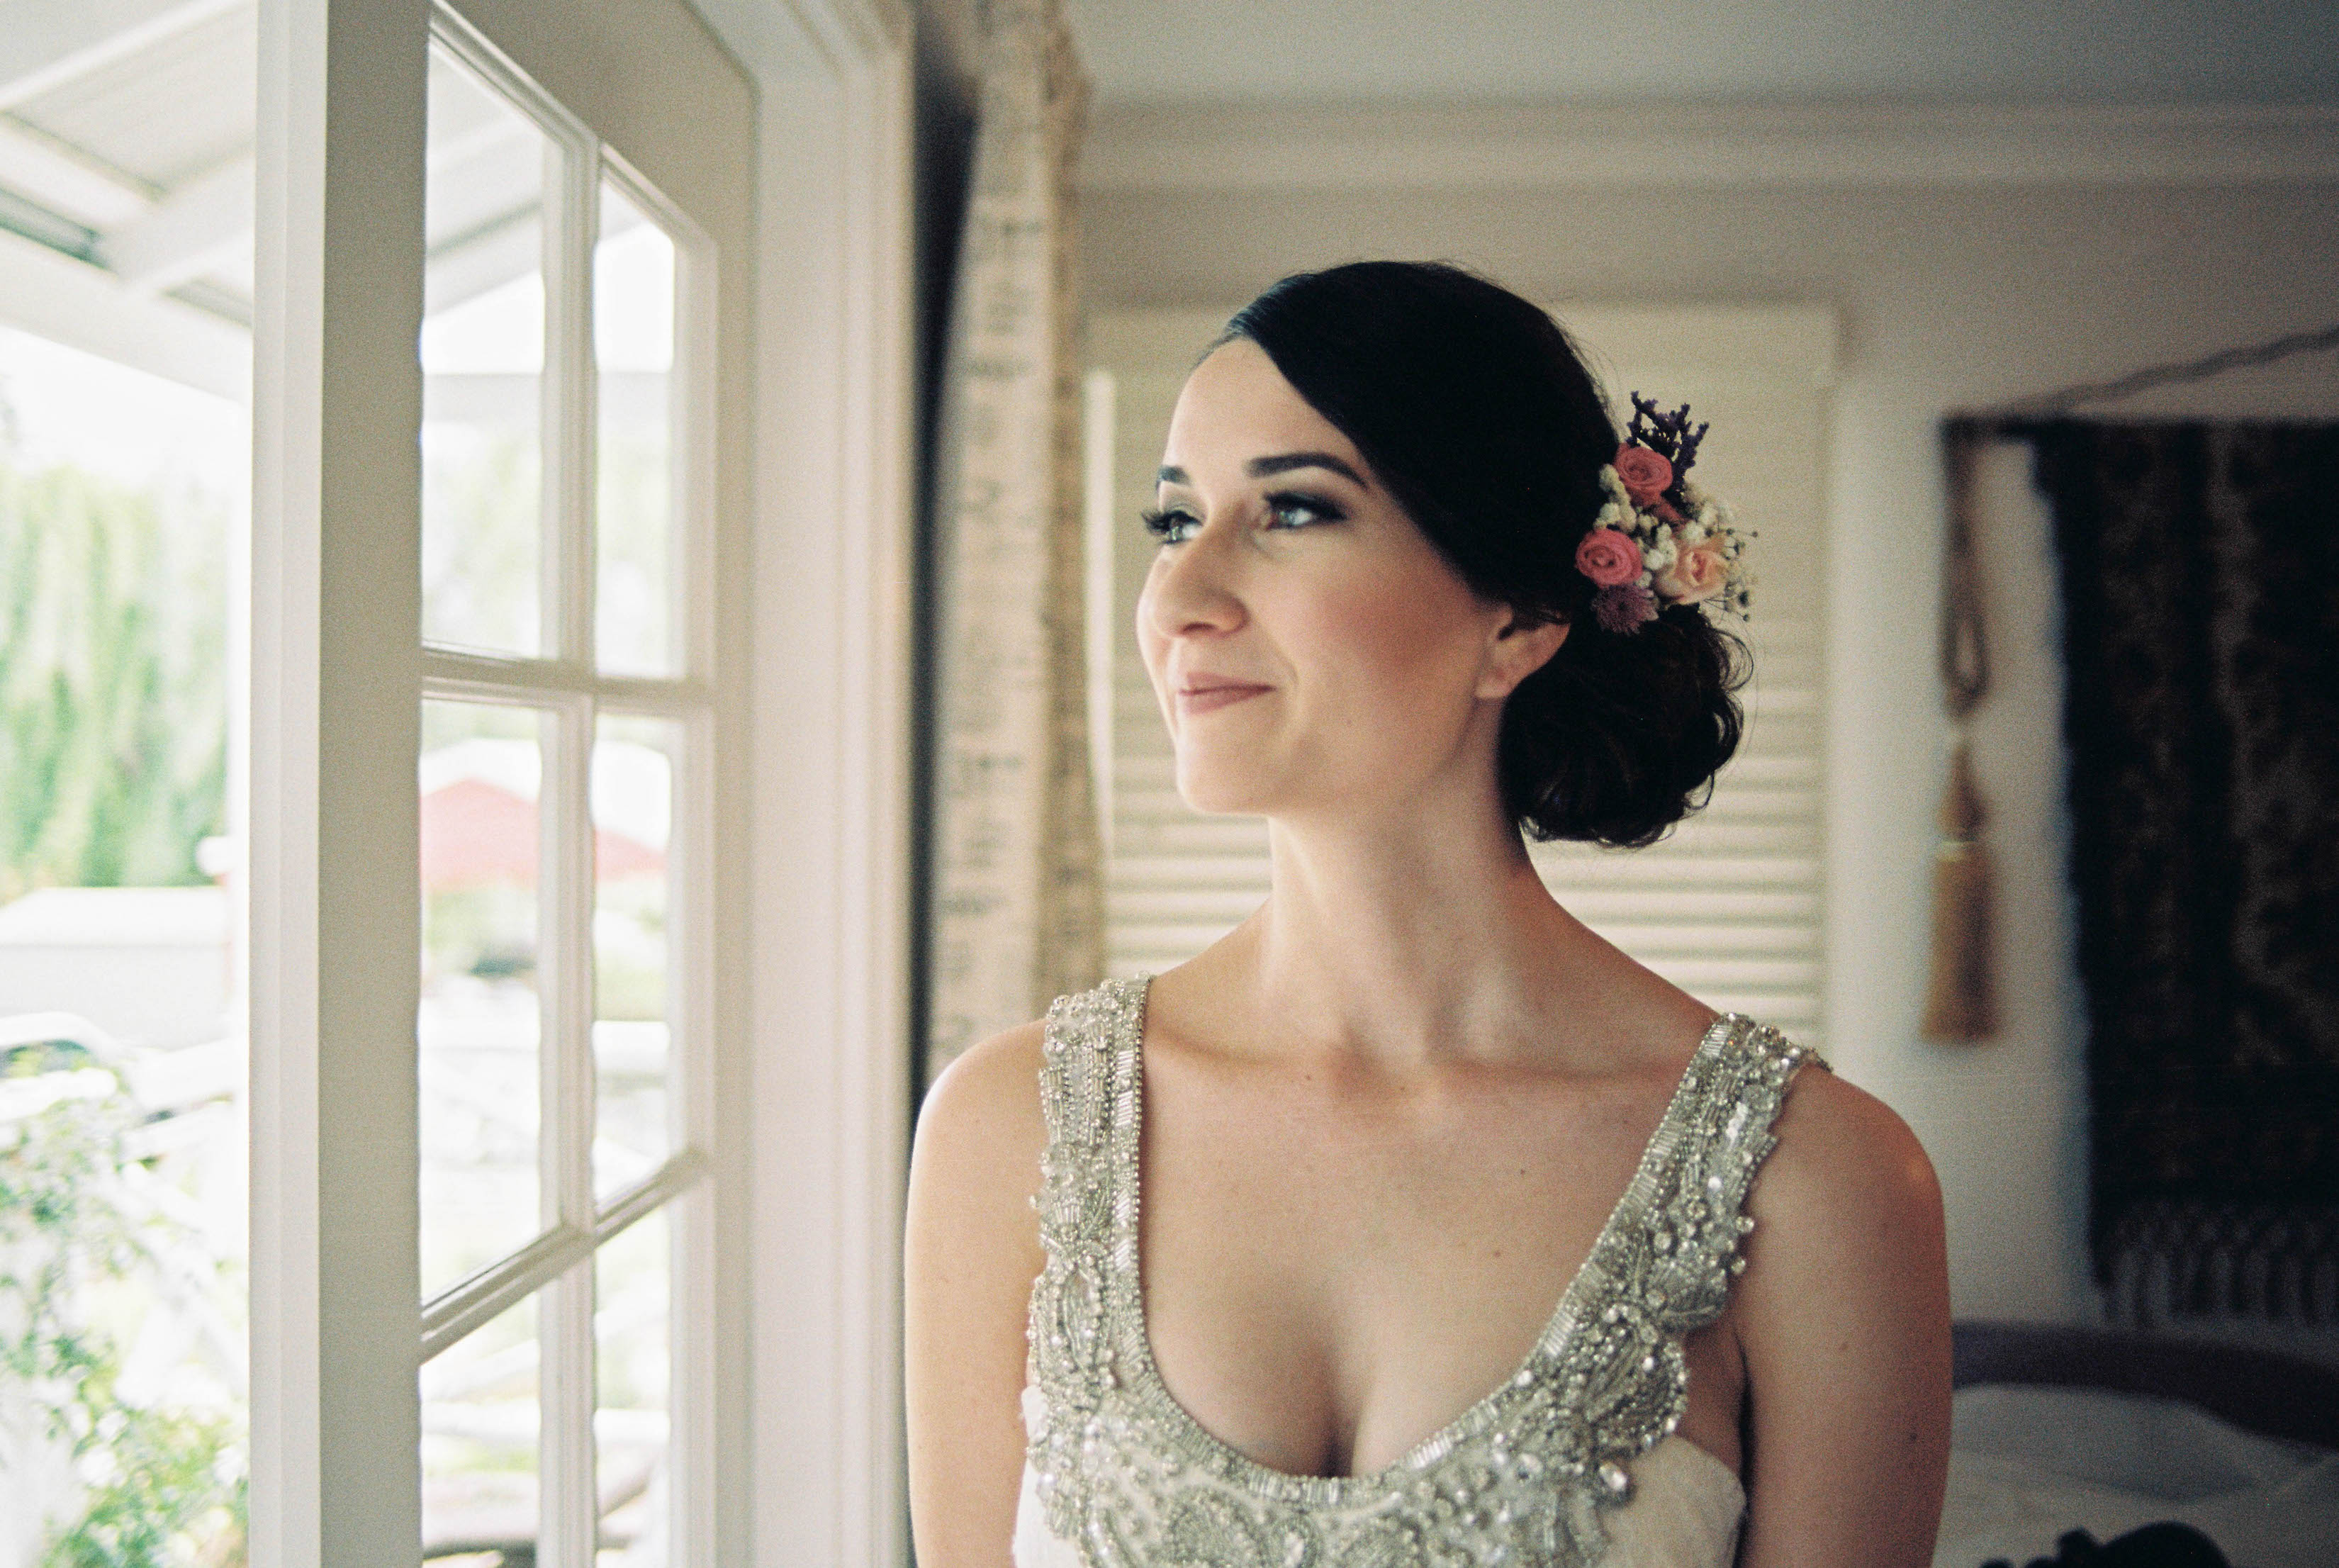 An analogue portrait of a beautiful bride the morning of her wedding in Bridgetown, Western Australia